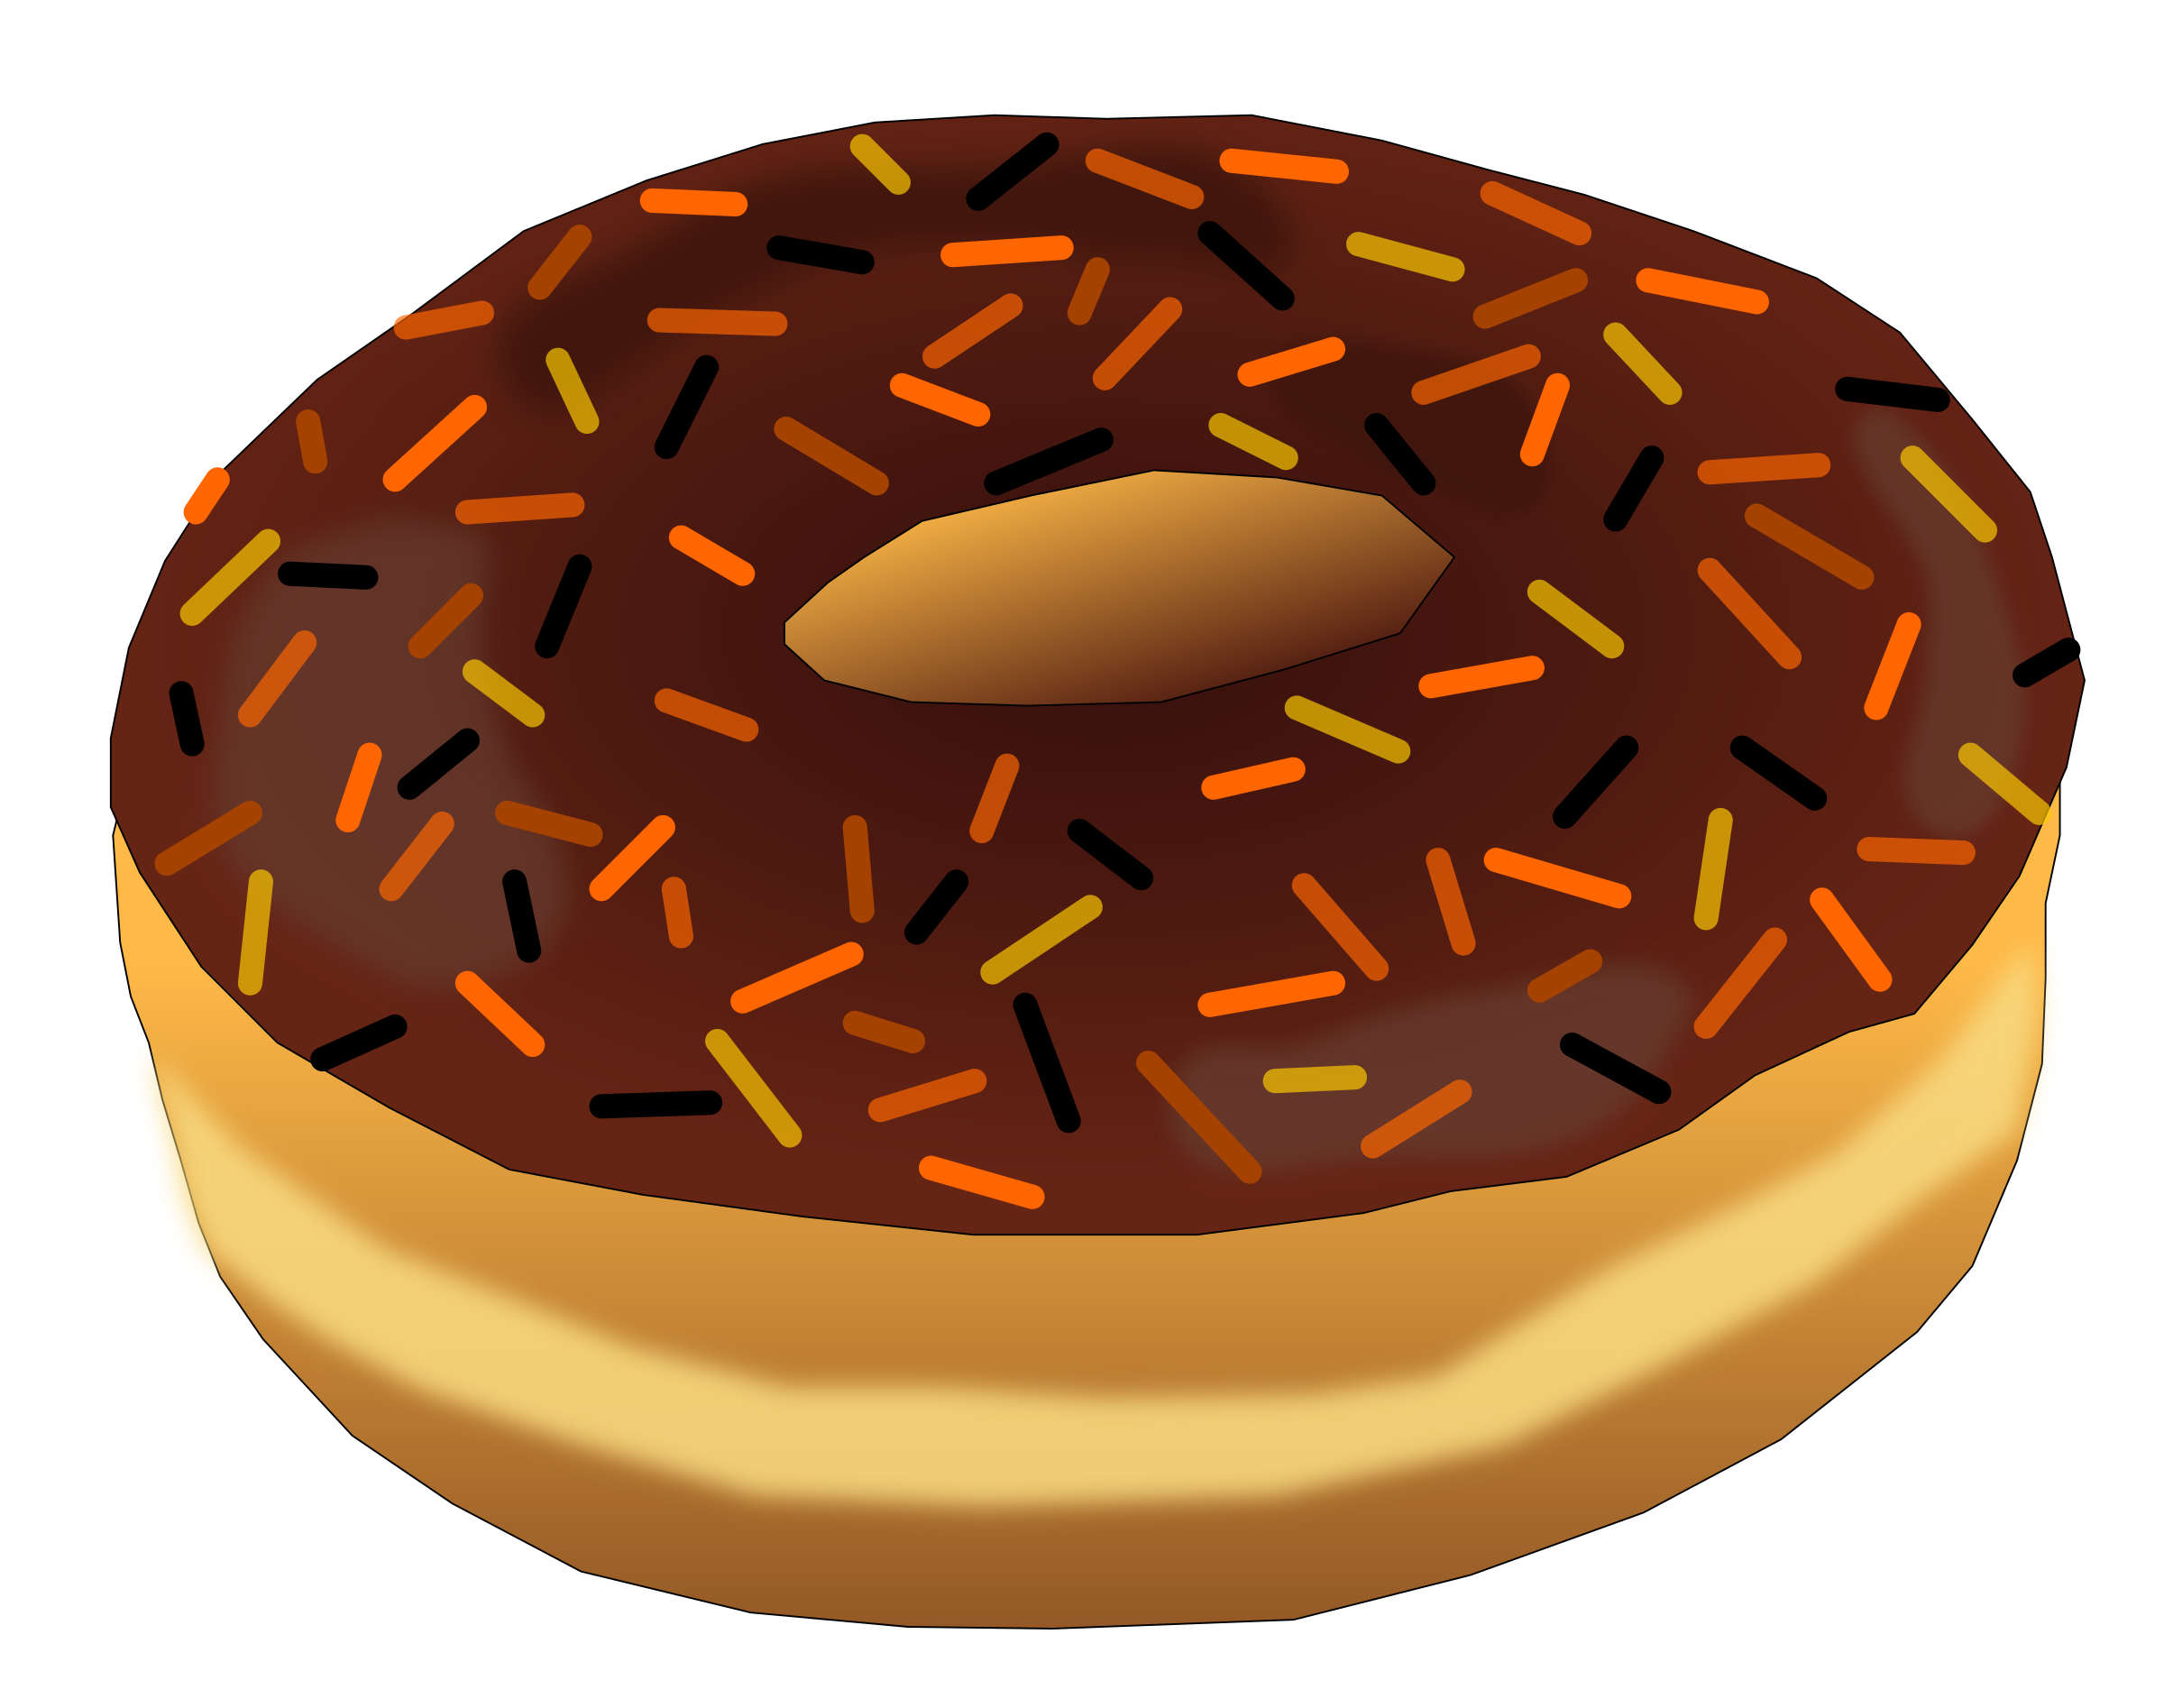 Halloween clipart snack. Donut big image png